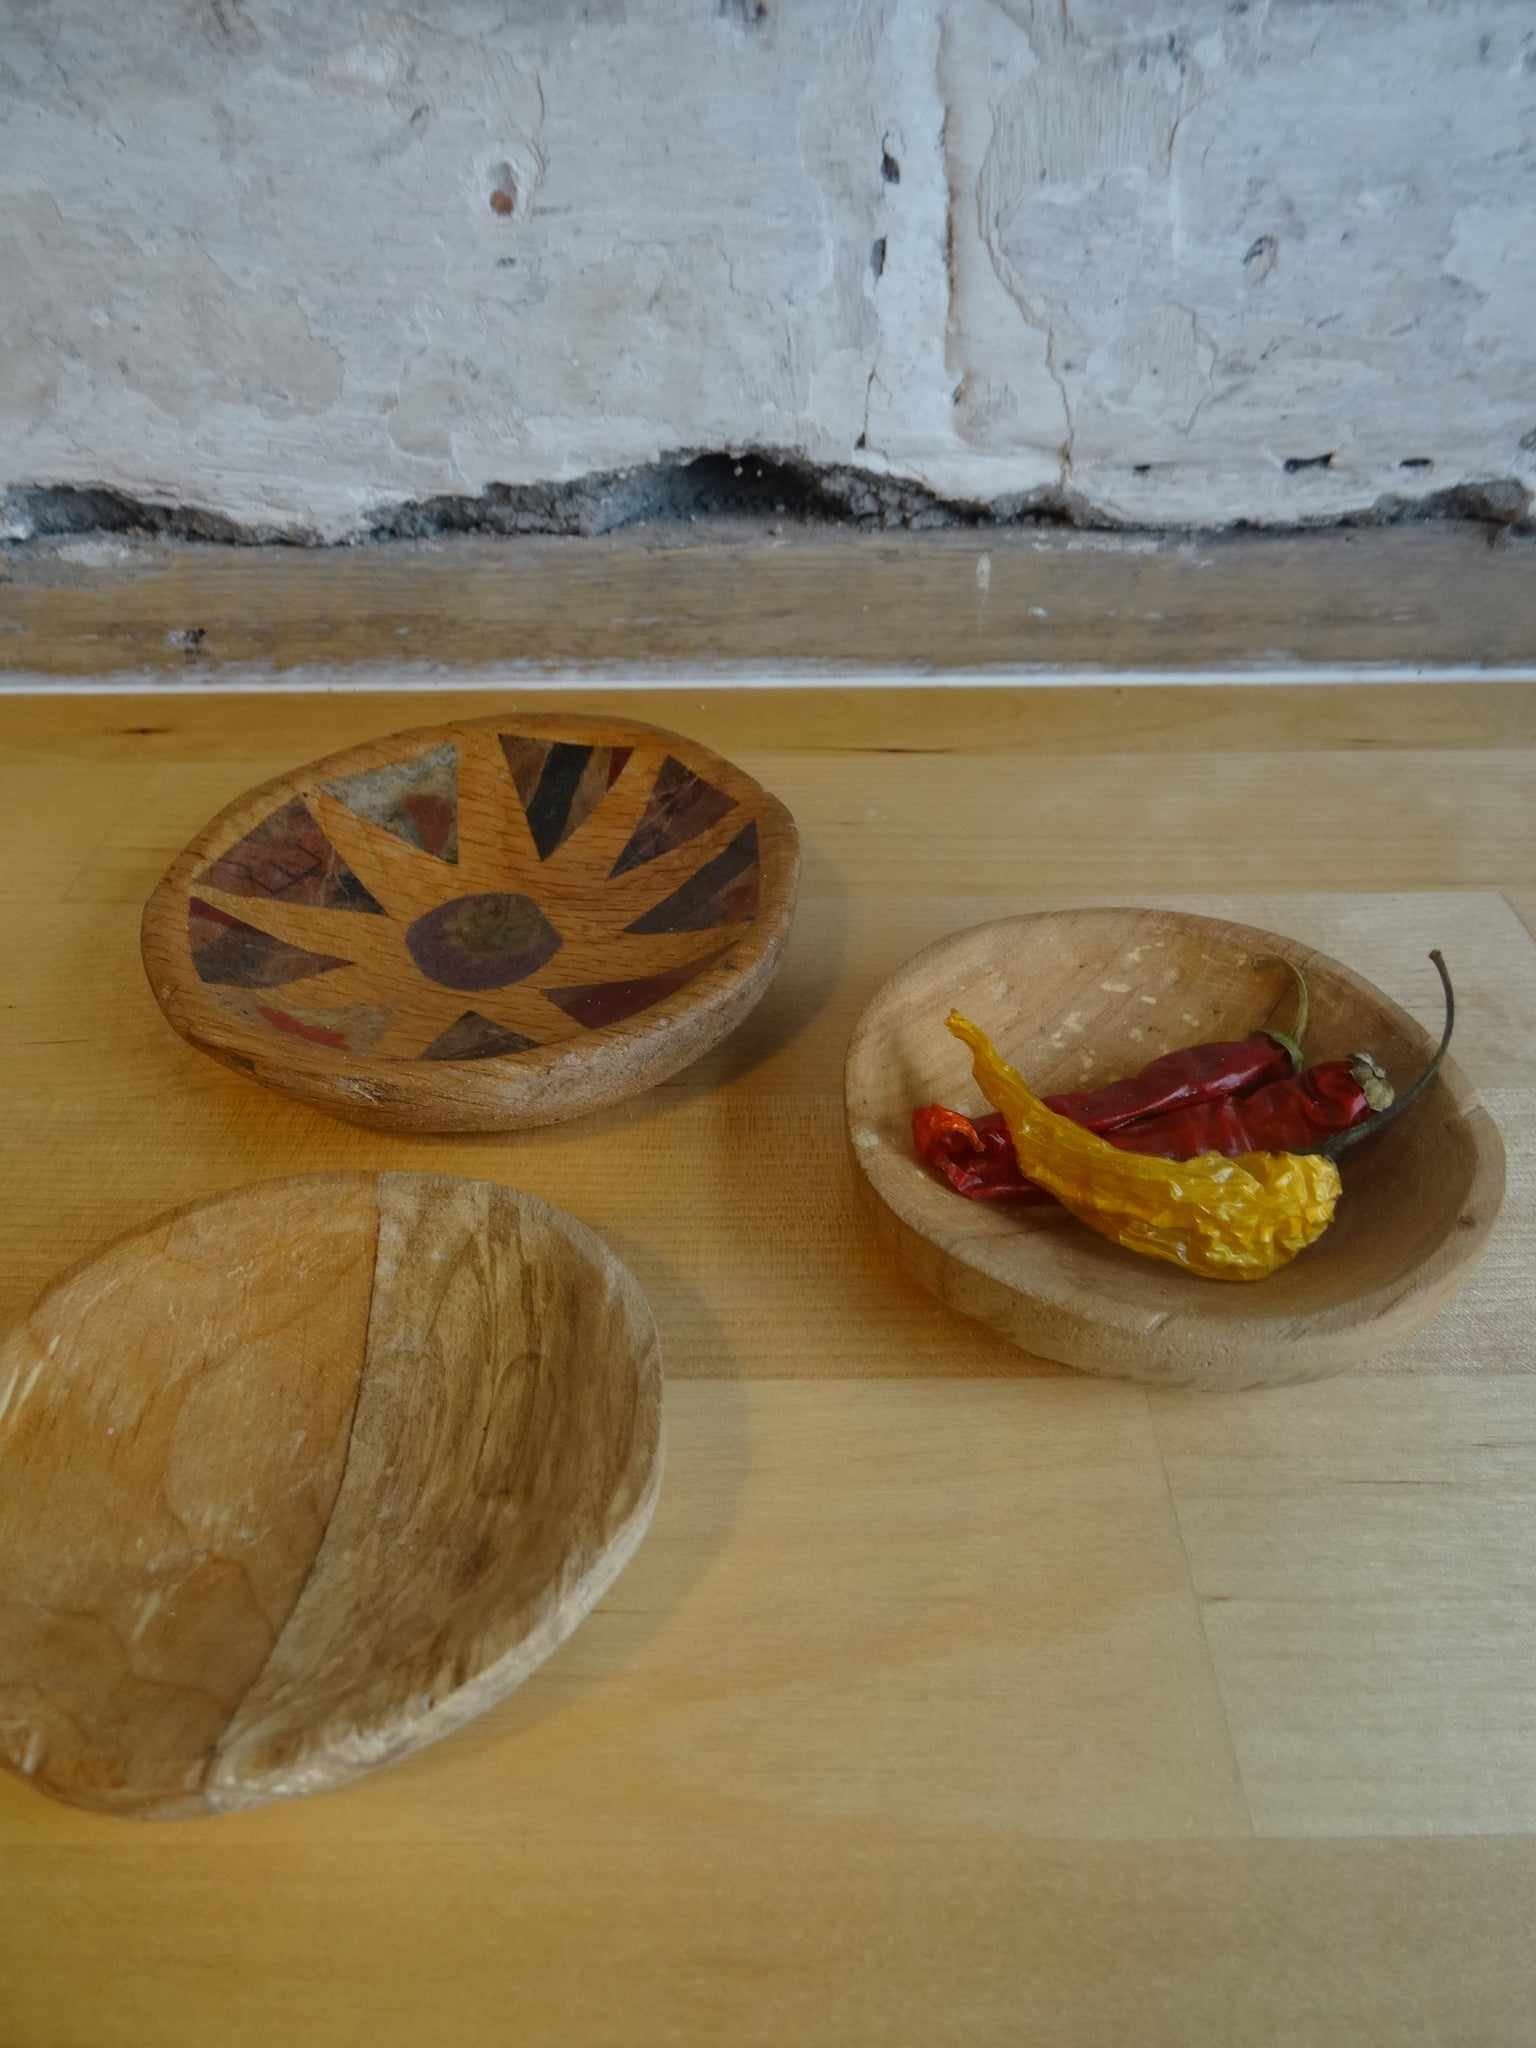 Mini trinket dishes